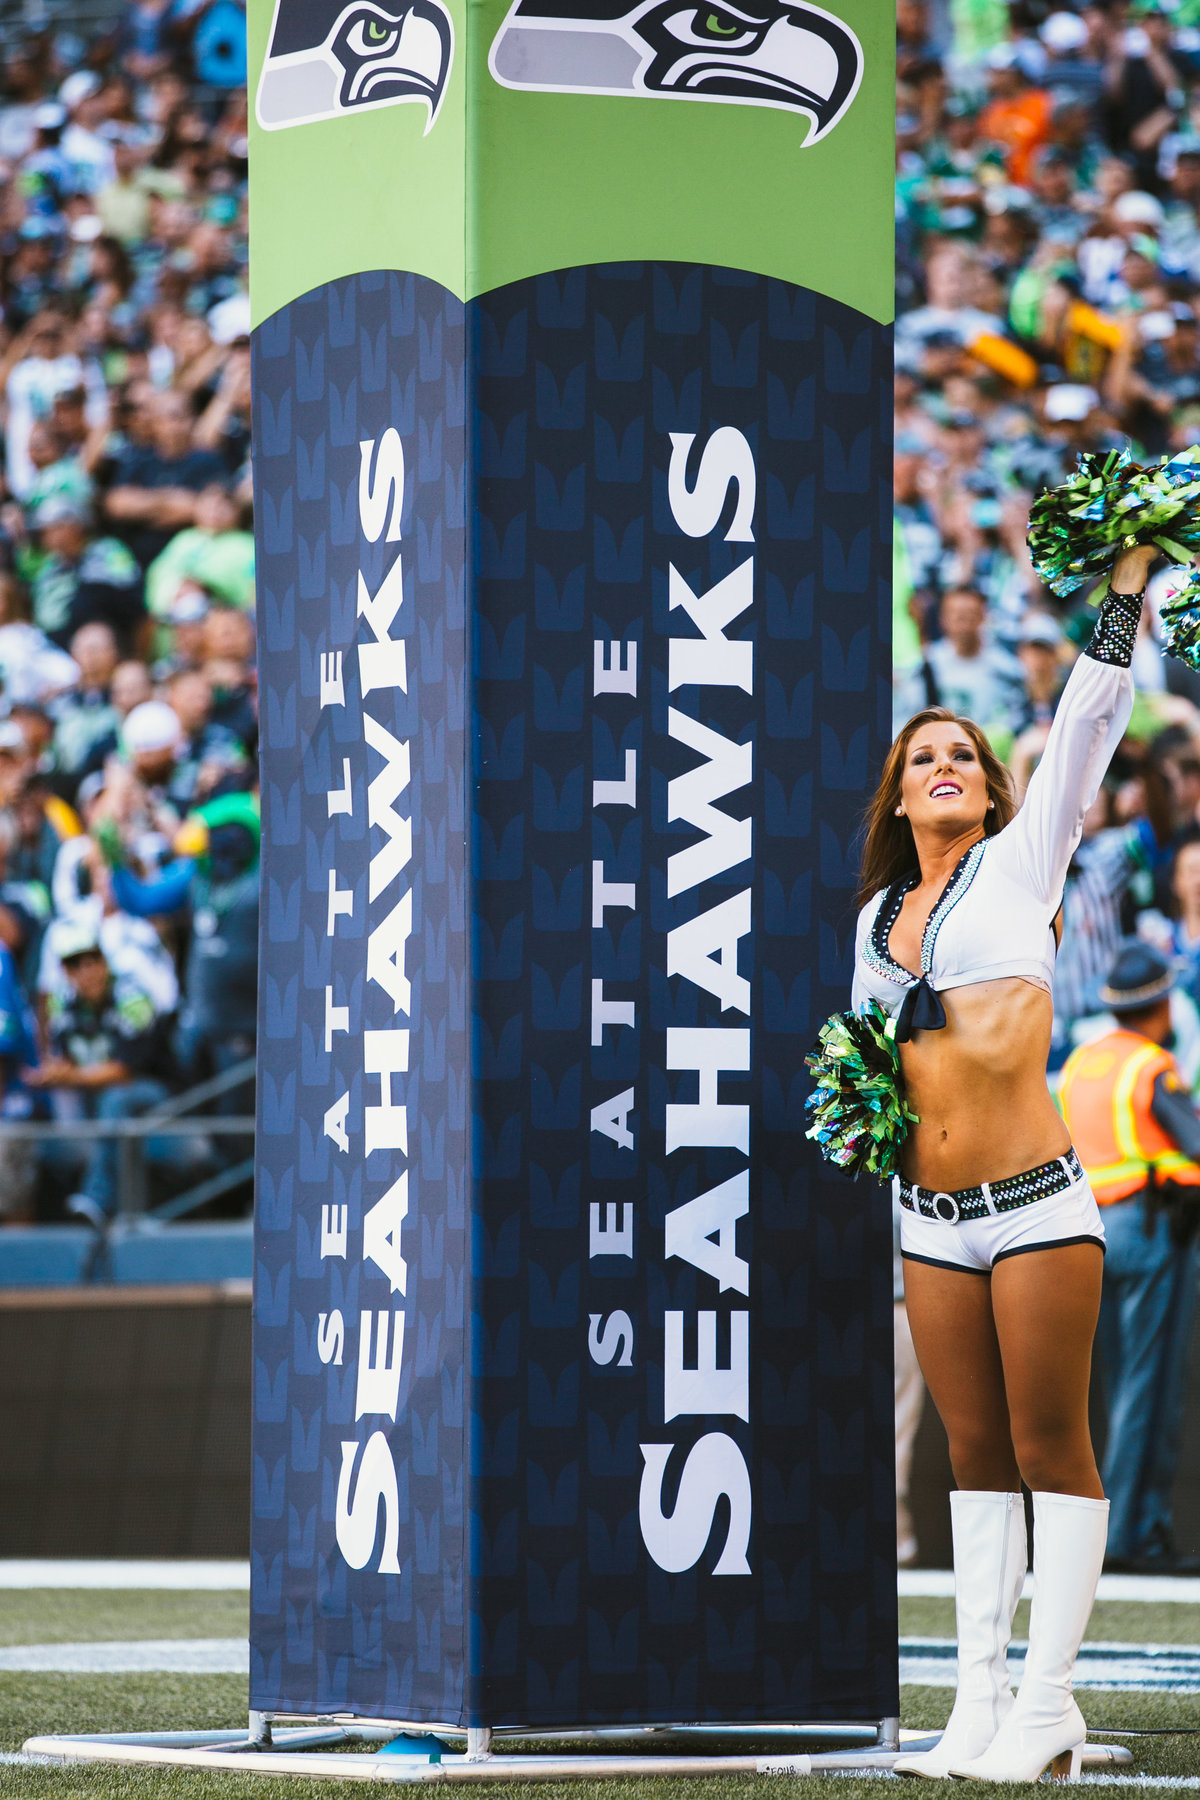 SeahawksVSPackers_9.4.14-6841